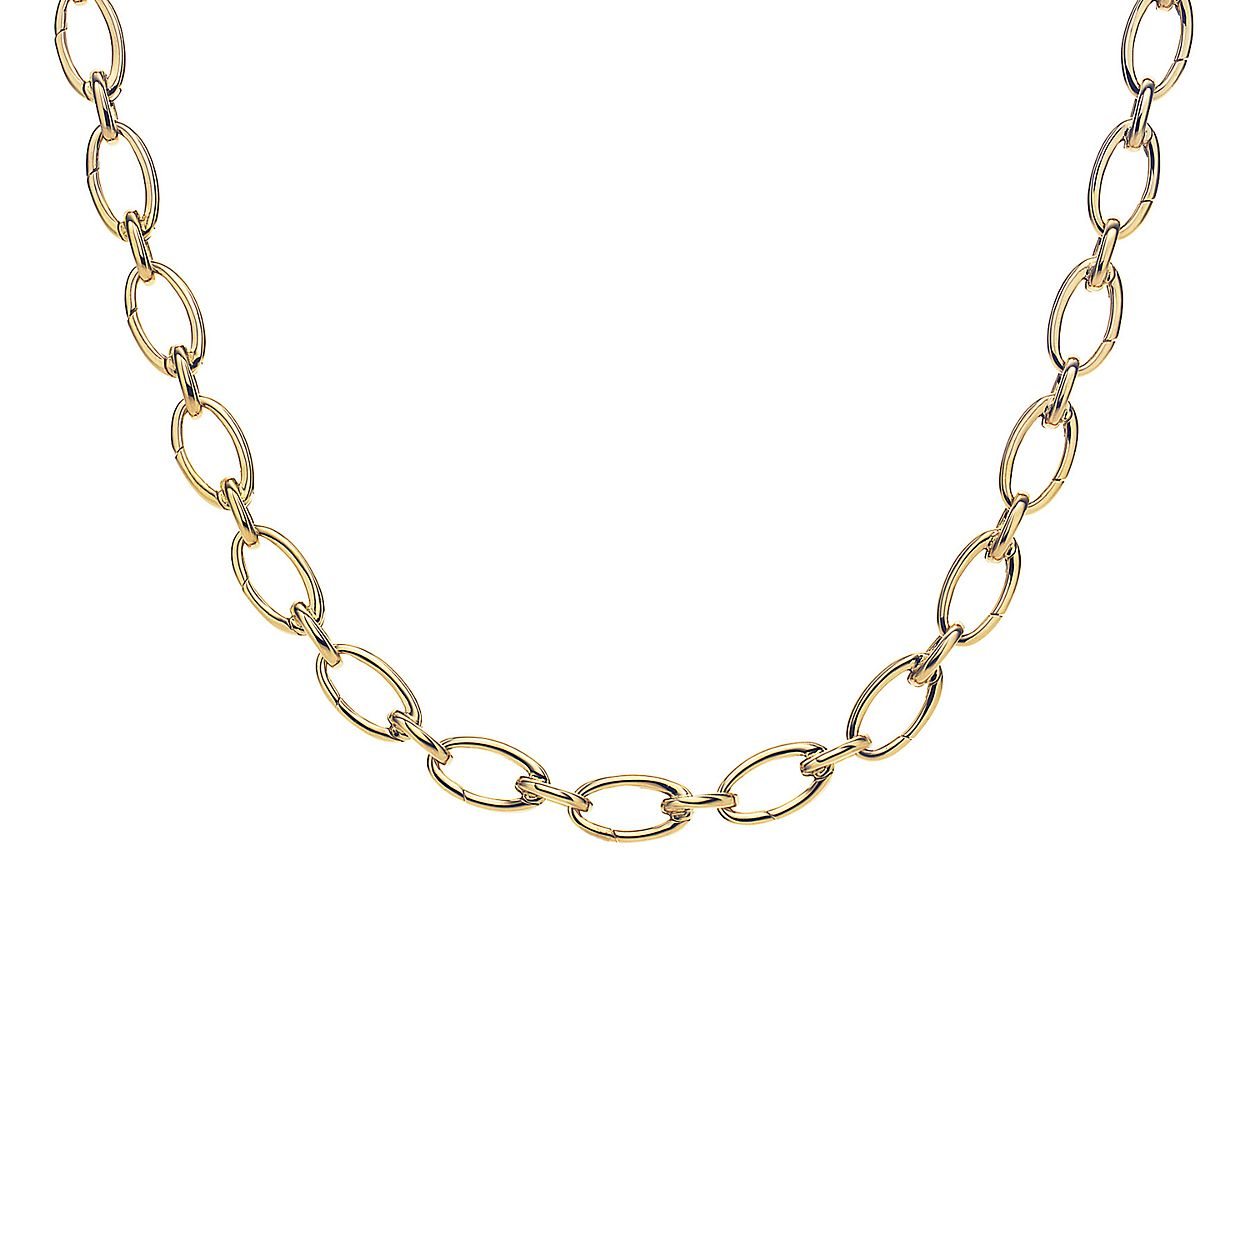 Link clasp necklace in 18k gold 18 long tiffany co link clasp necklace link clasp necklace aloadofball Gallery